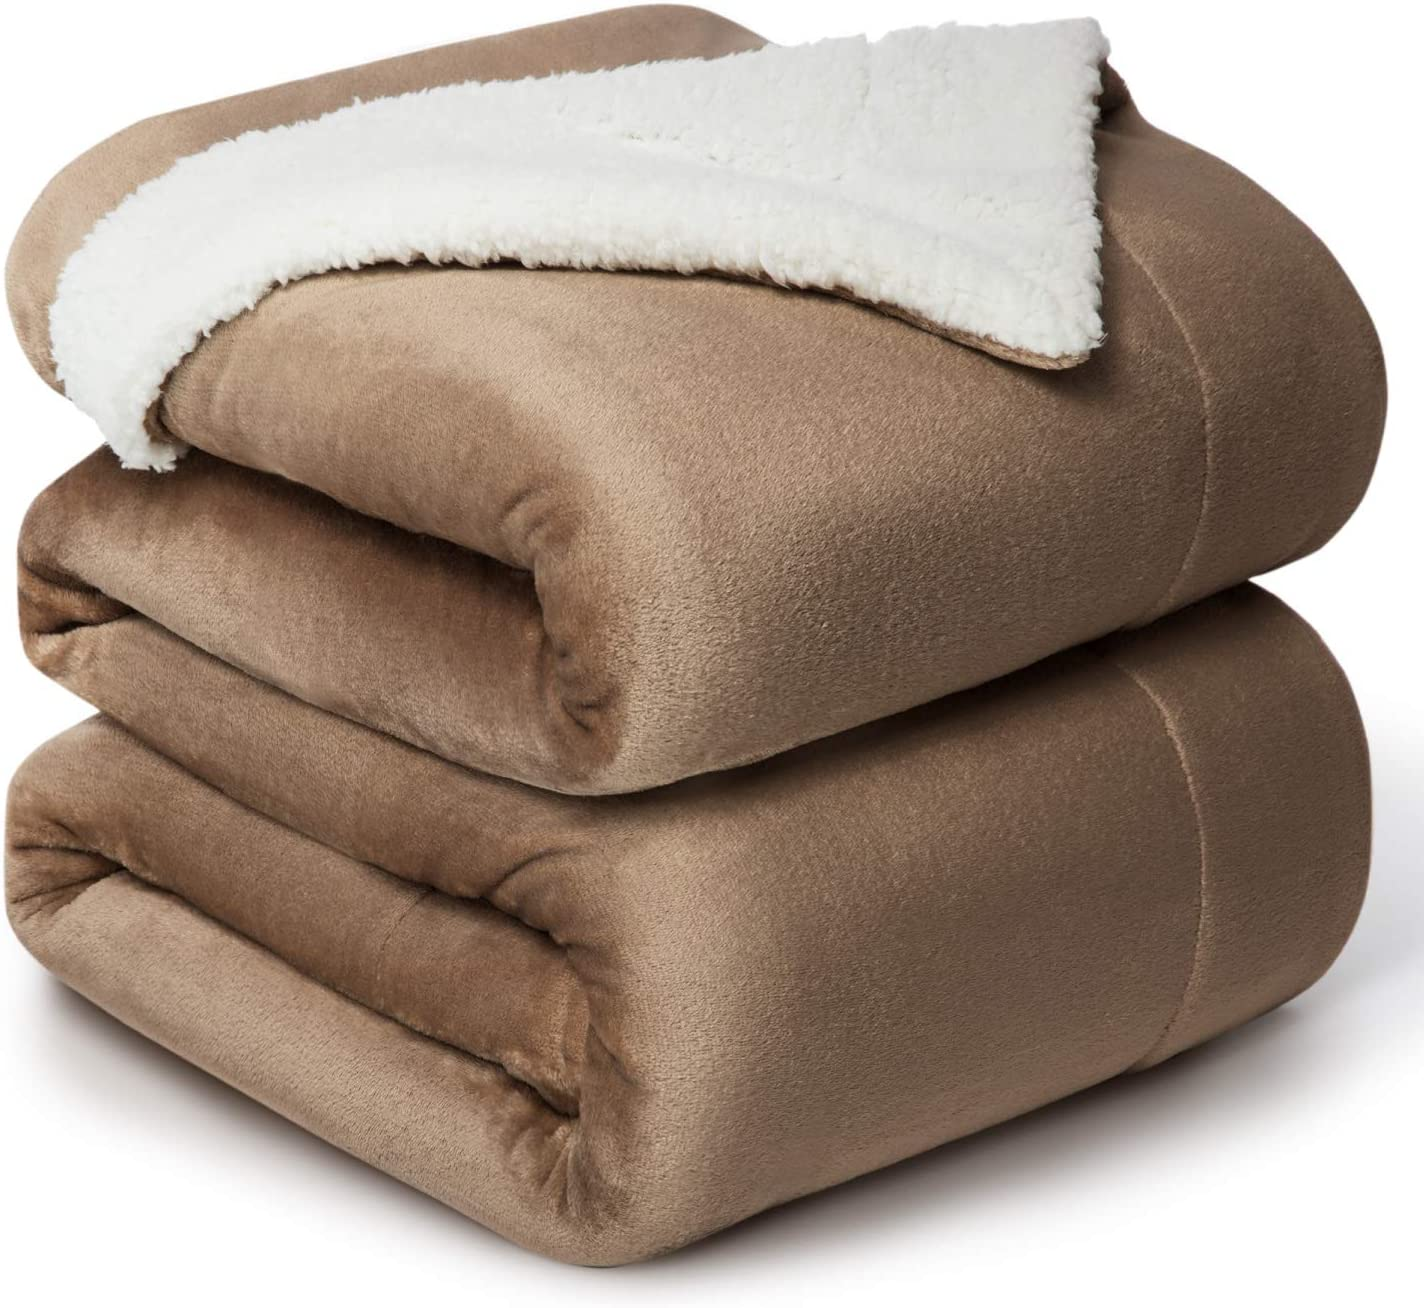 Bedsure Sherpa Fleece Blanket Queen Size Camel Plush Throw Blanket Fuzzy Soft Blanket Microfiber